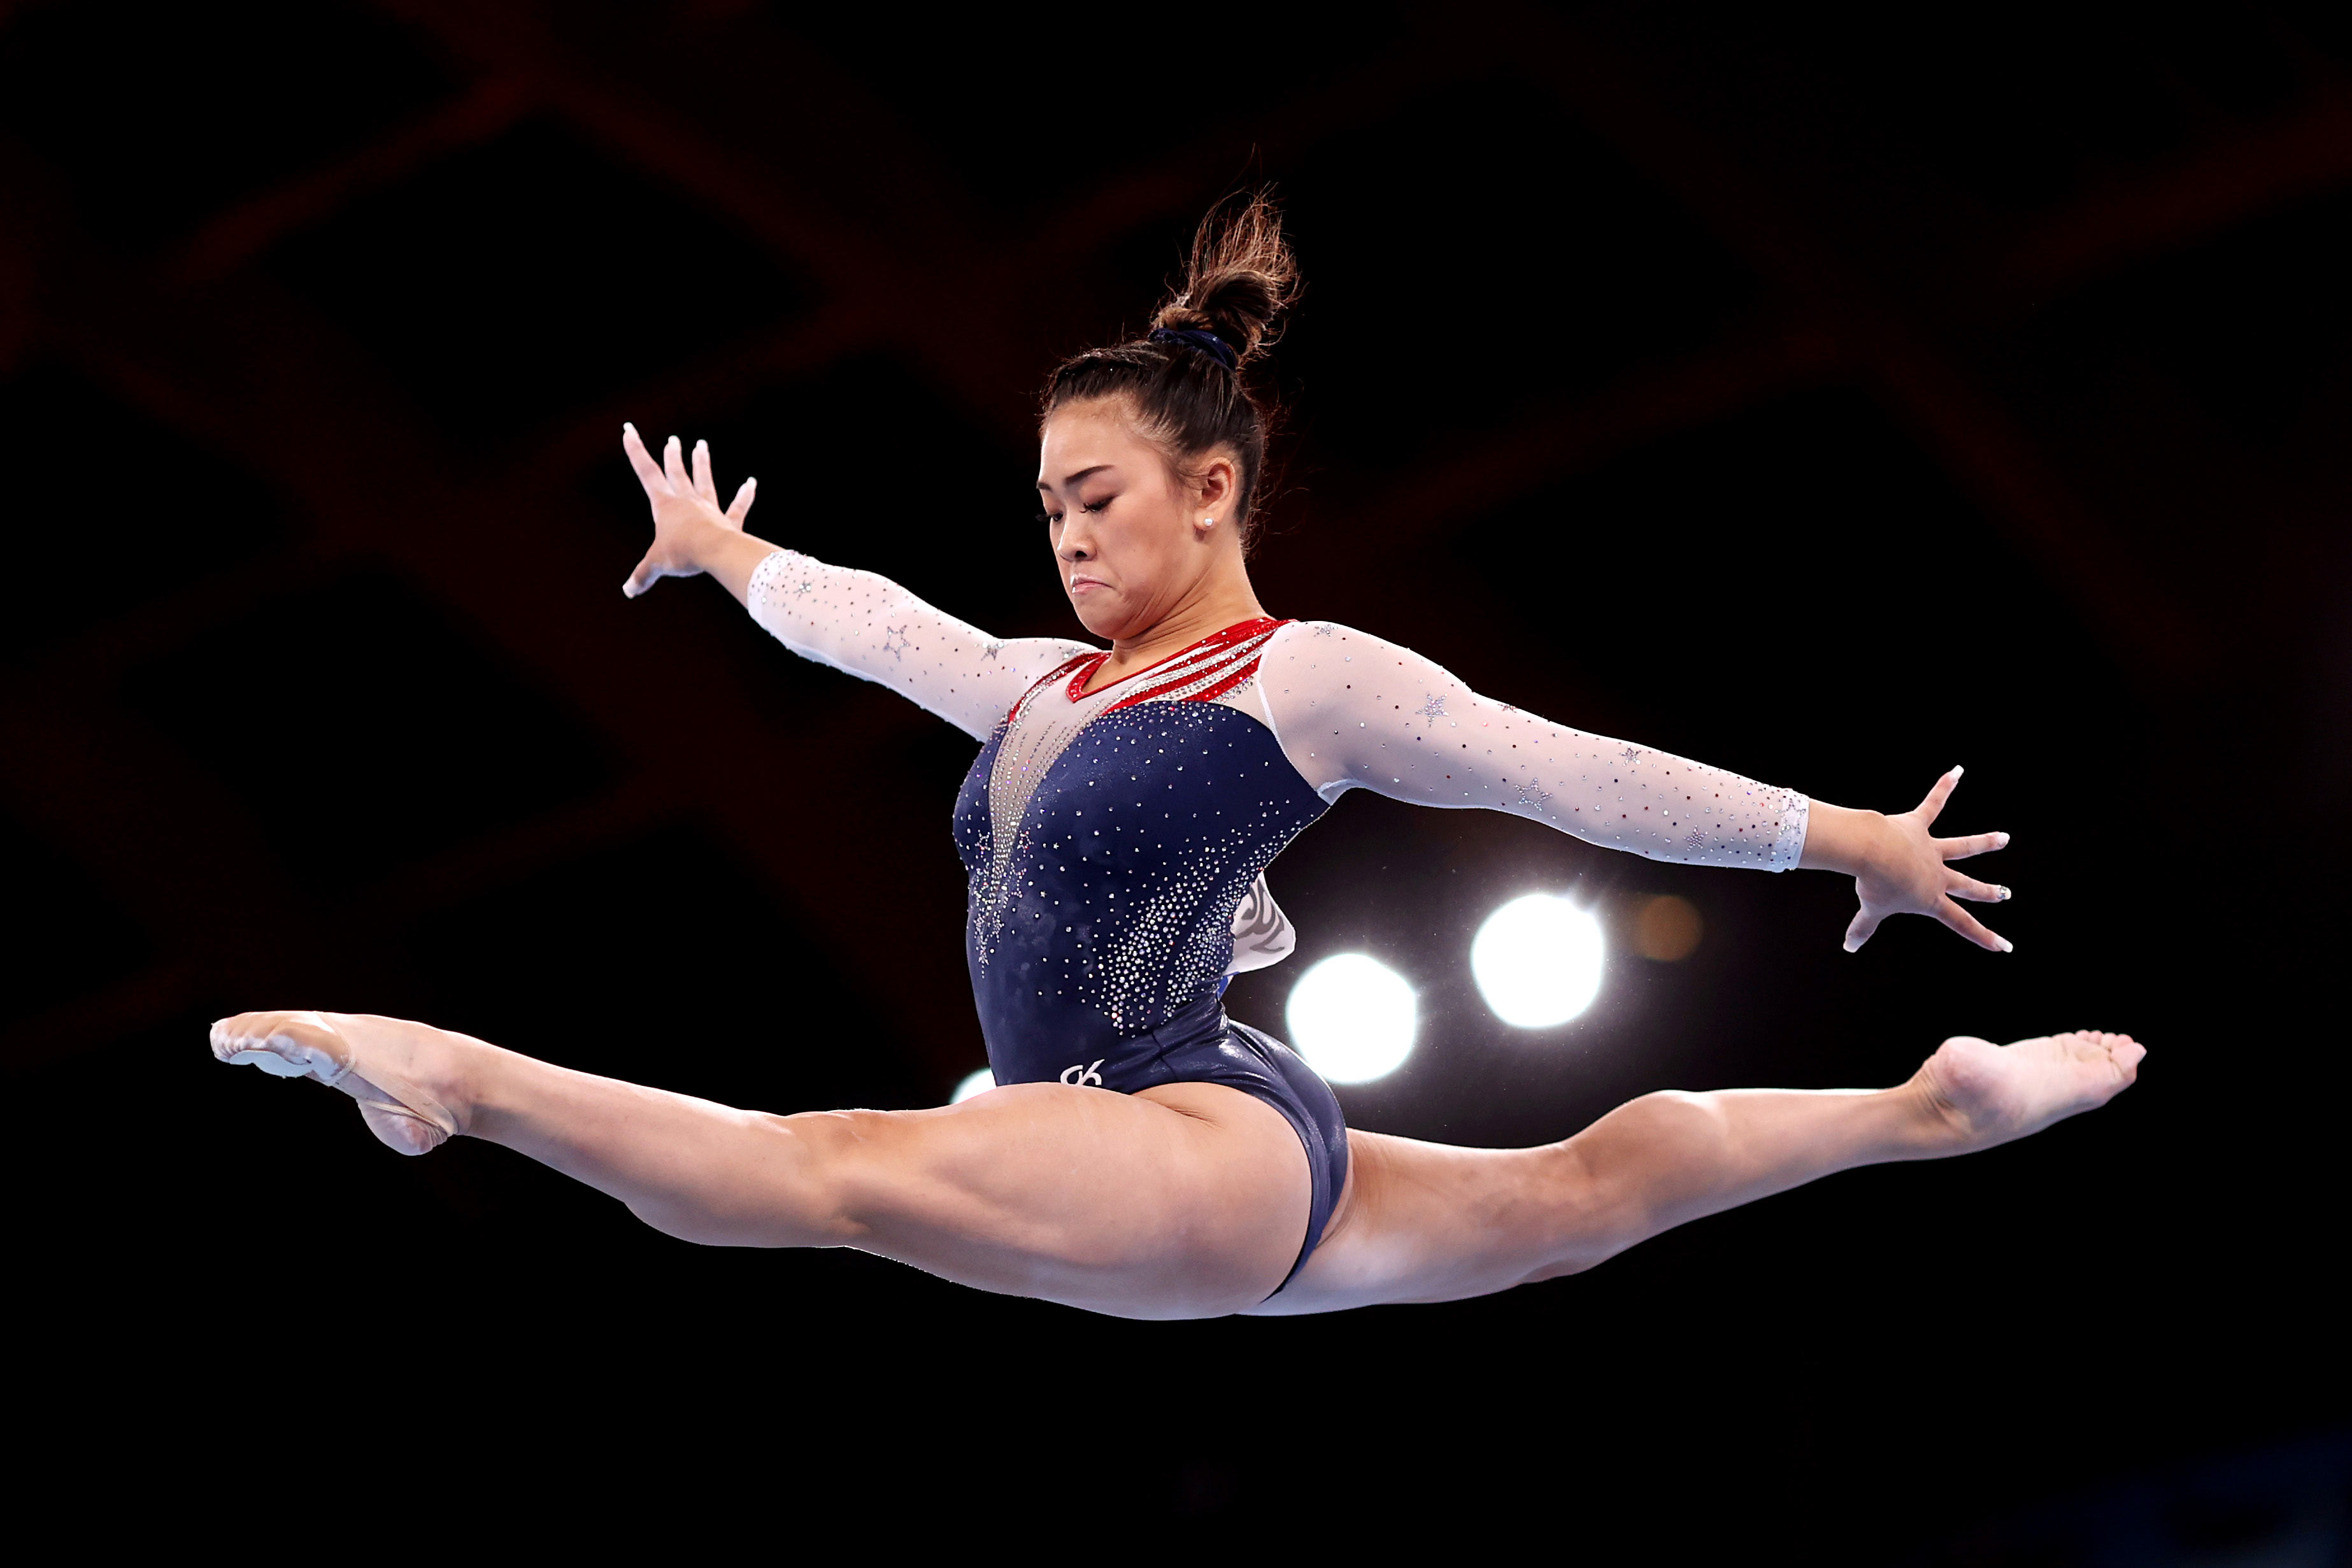 USA's Sunisa Lee competes on balance beam during the all-around final on July 29.